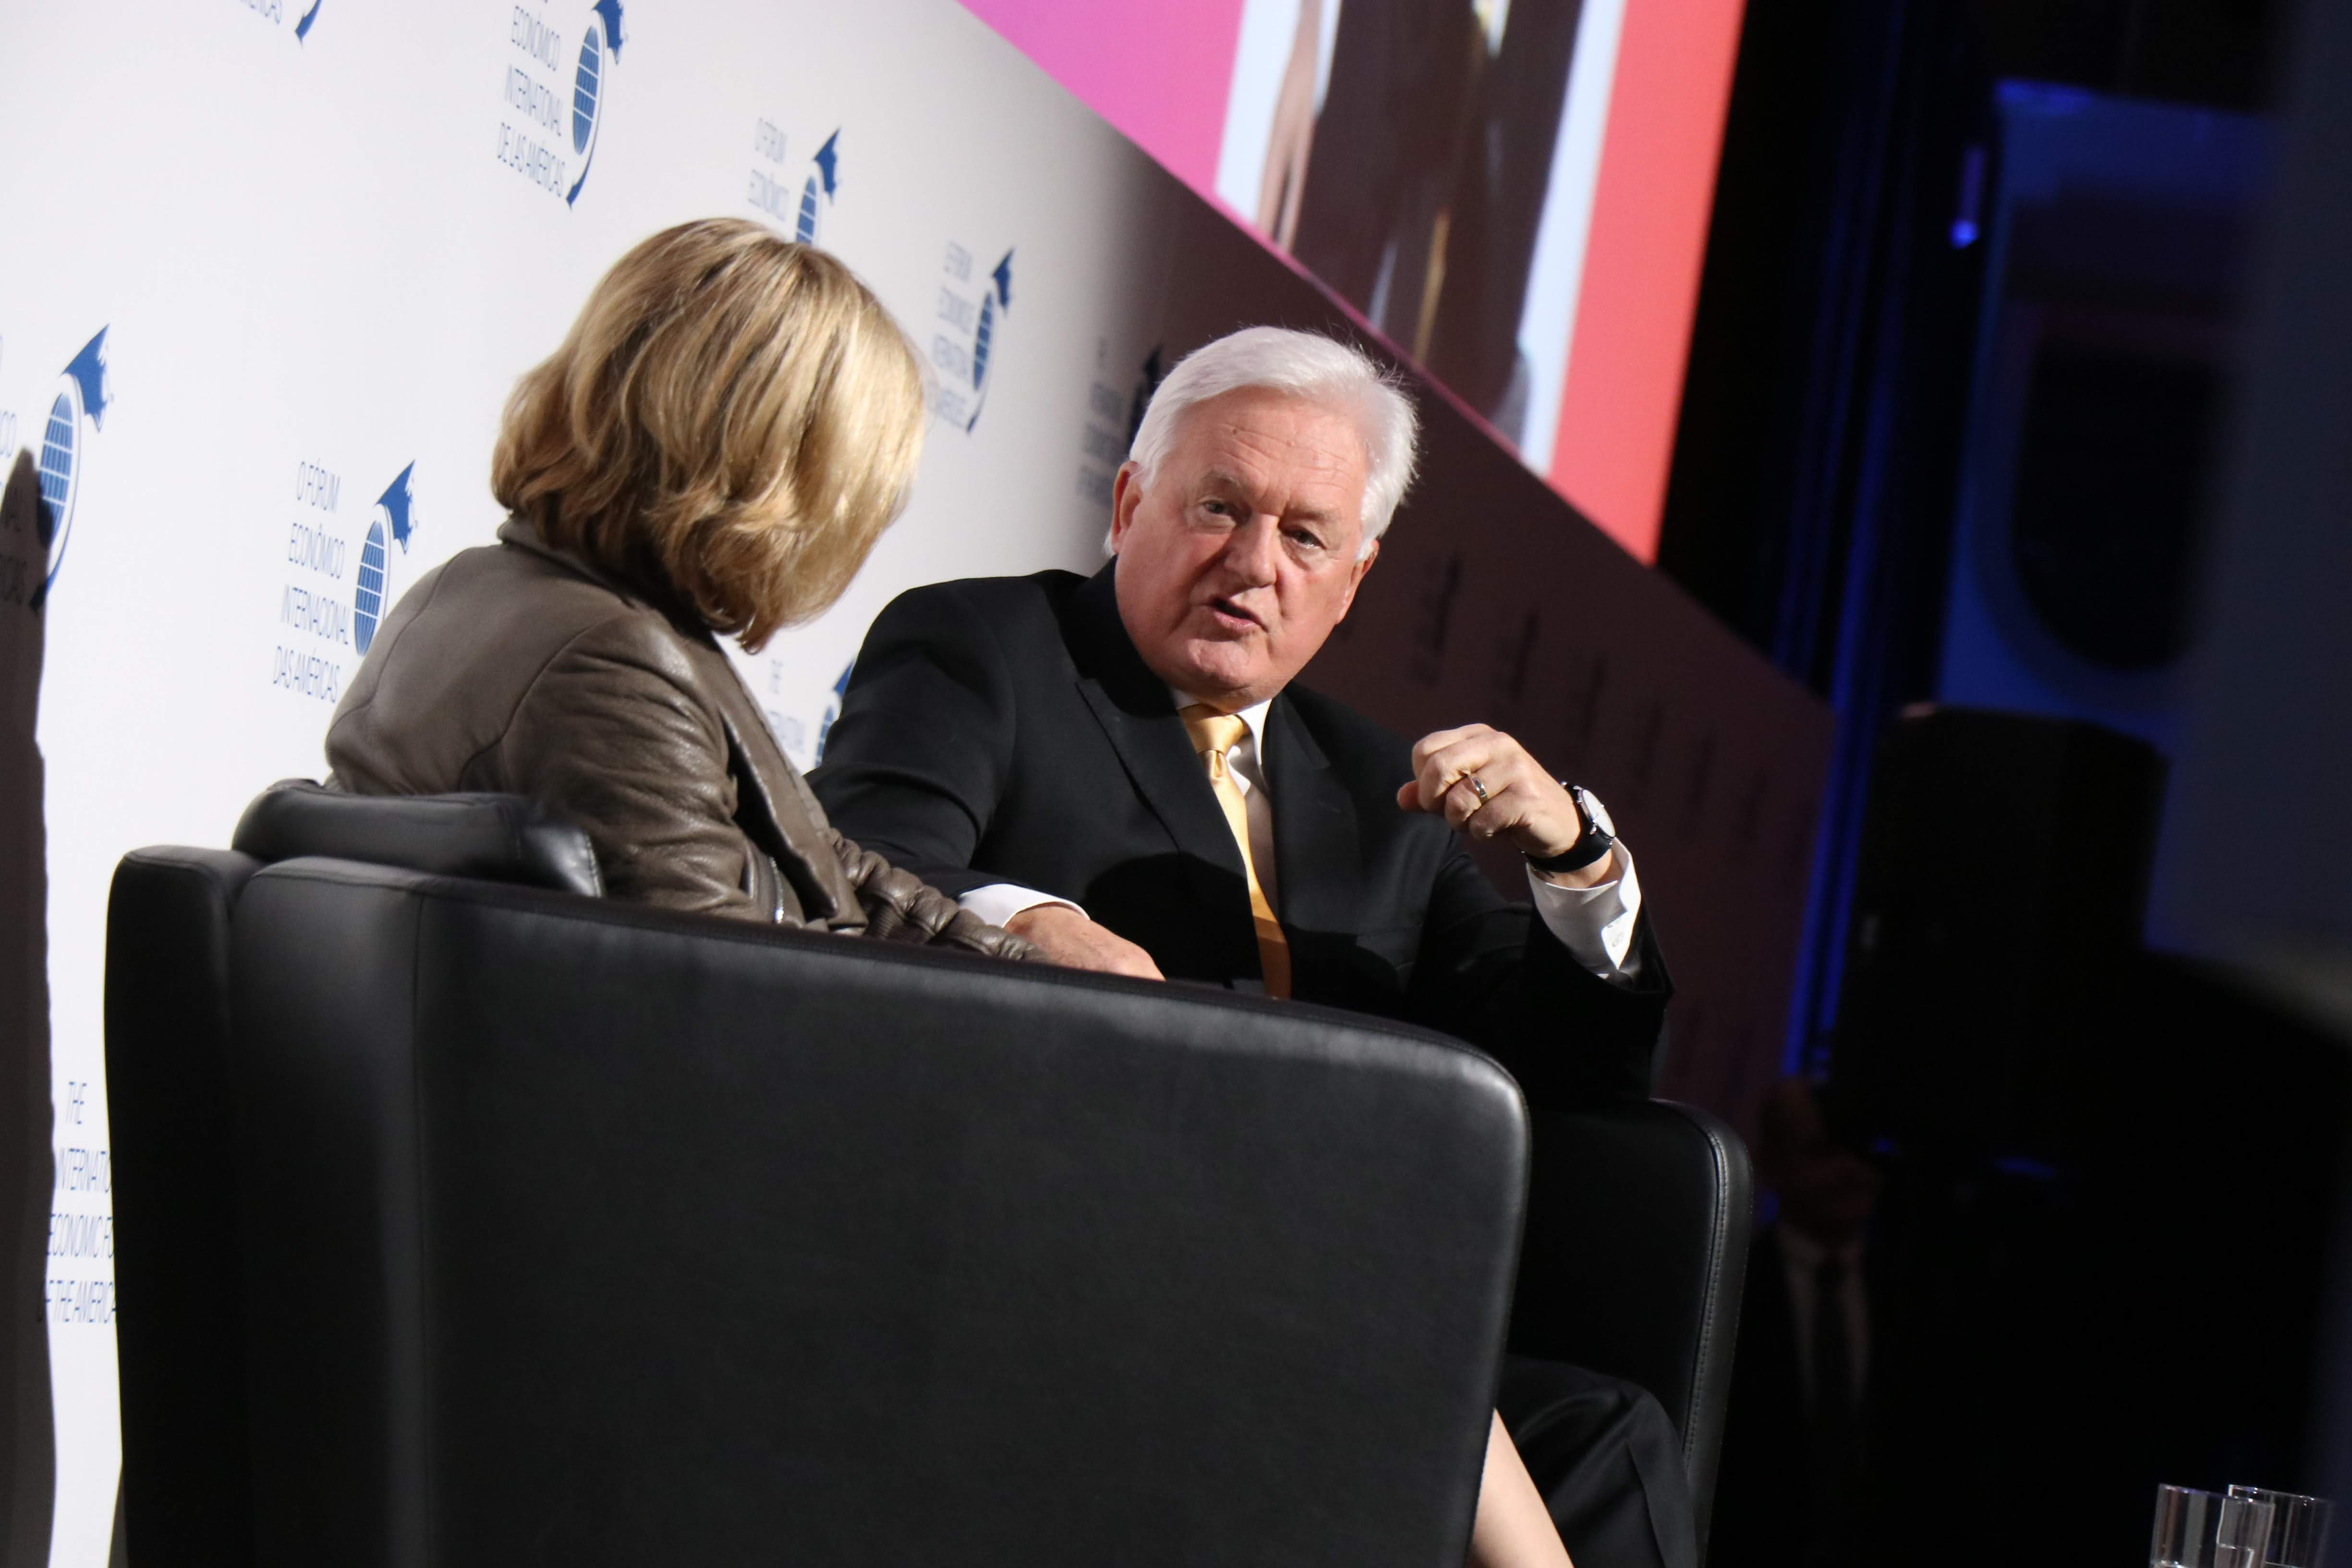 Luncheon - John McFarlane, Chairman, Barclays interviewed by Janet De Silva, President and Chief Executive Officer, Toronto Region Board of Trade (TRBOT)